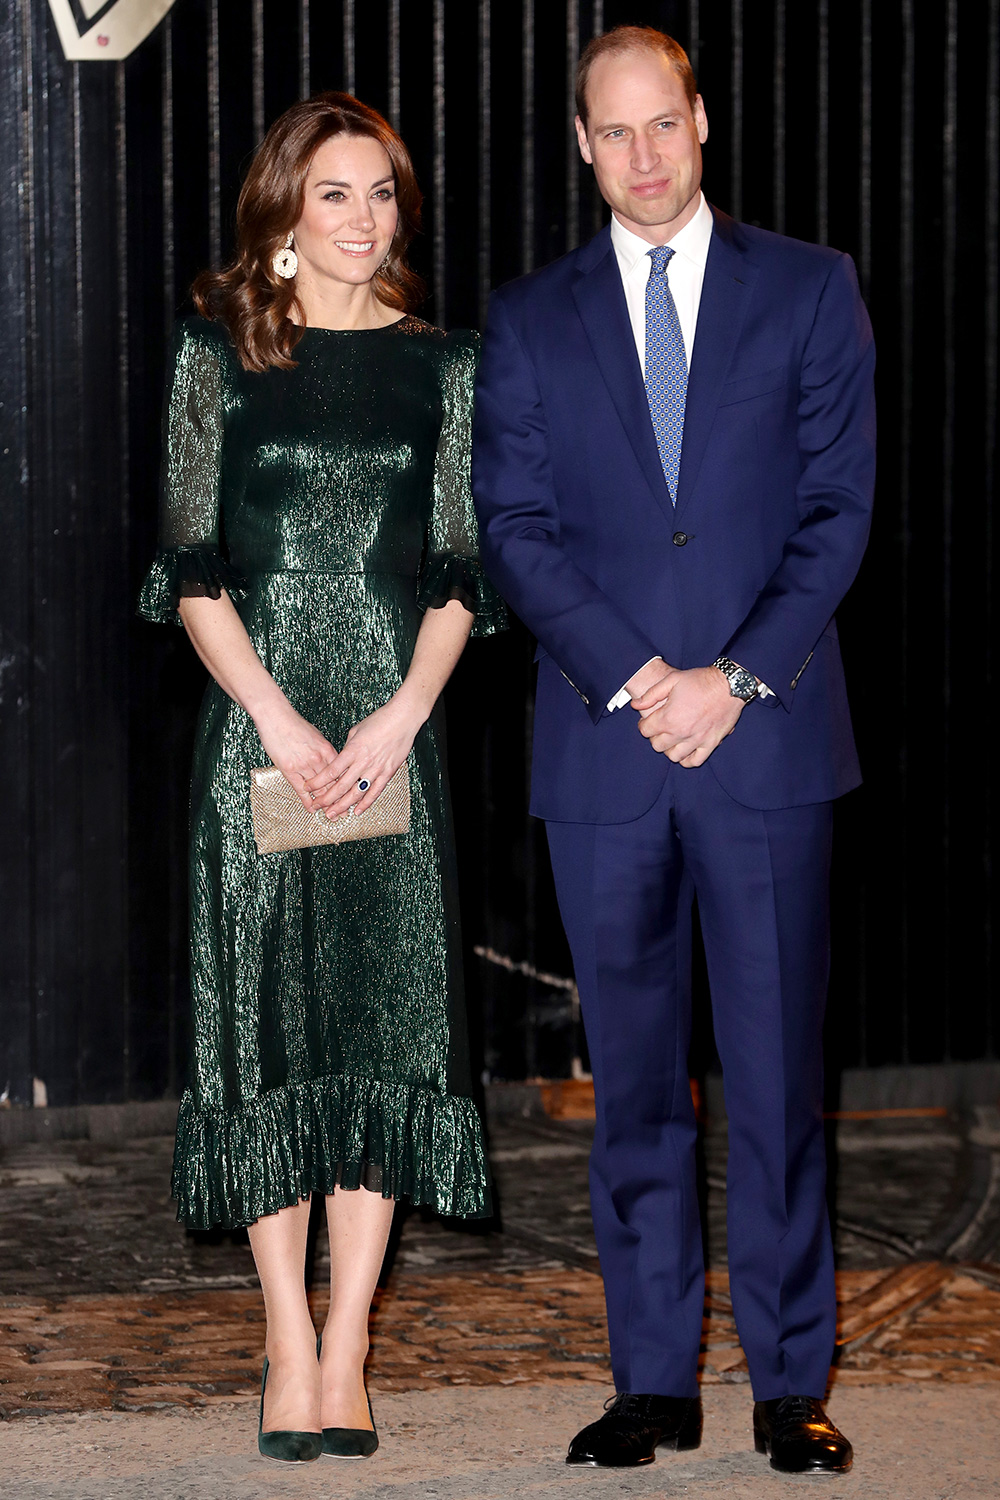 Catherine, Duchess of Cambridge and Prince William, Duke of Cambridge attend a reception hosted by the British Ambassador to Ireland Robin Barnett at the Guinness Storehouses Gravity Bar during day one of their visit to Ireland on March 03, 2020 in Dublin, Ireland